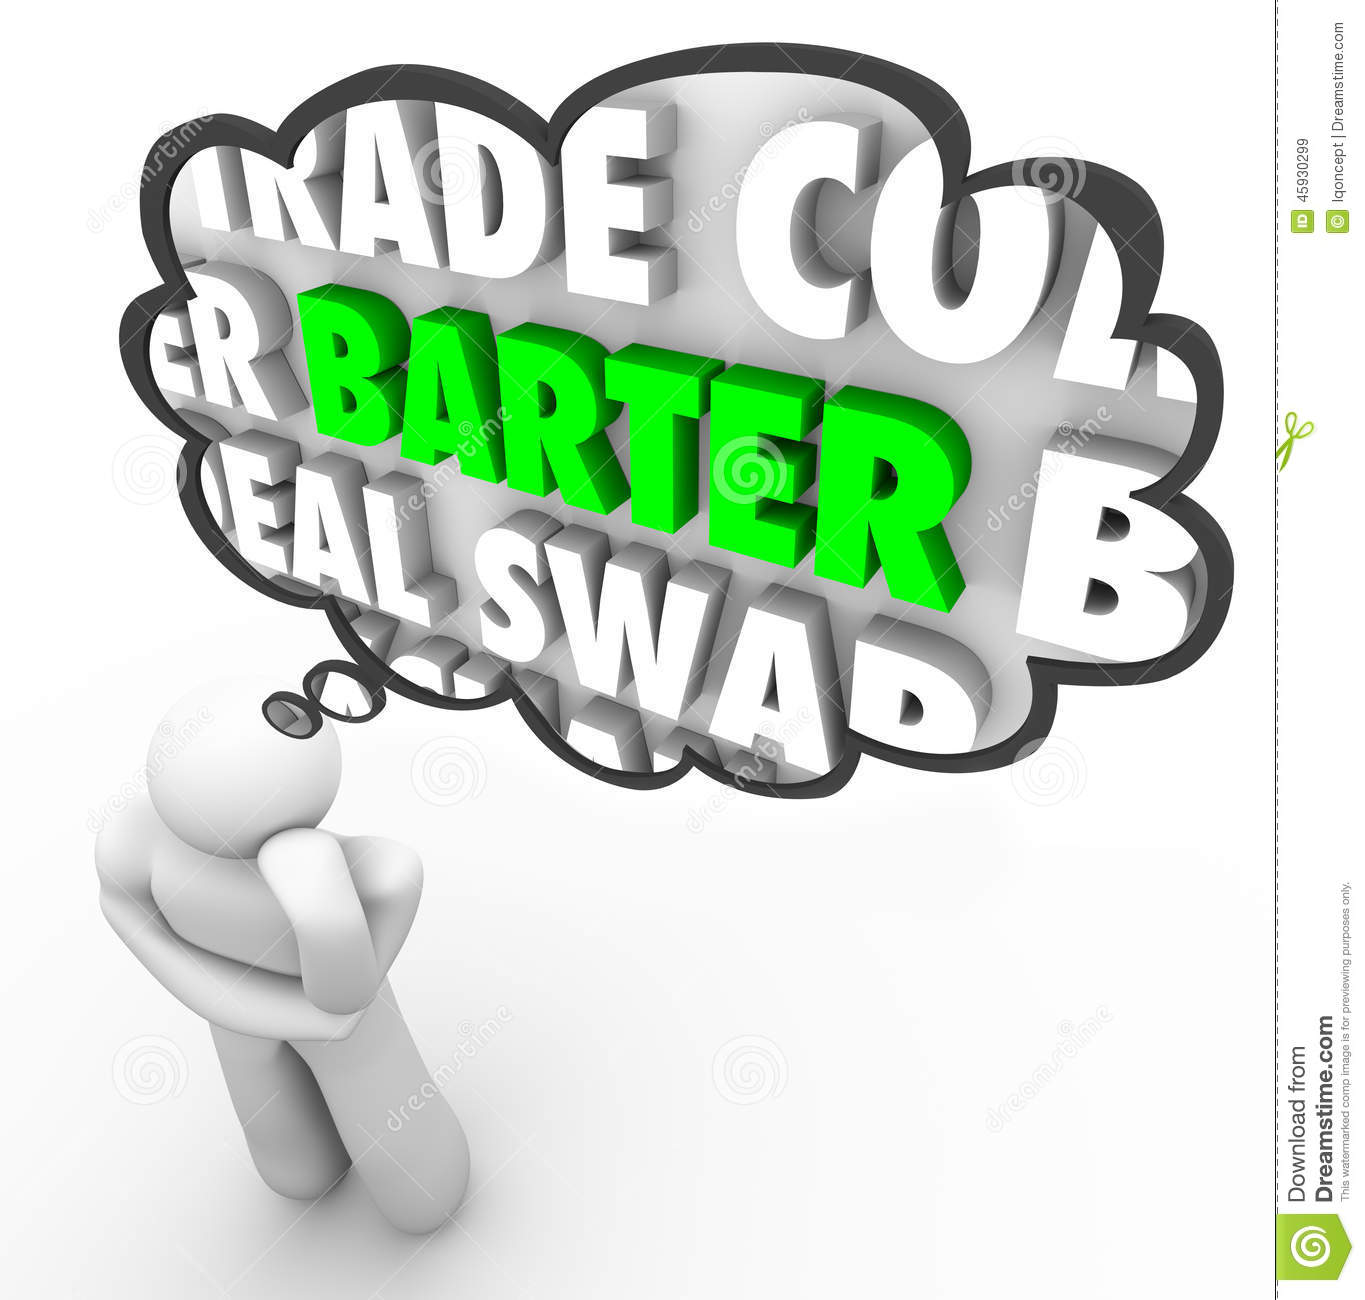 Barter - this is what barter deals. Barter Relations 6